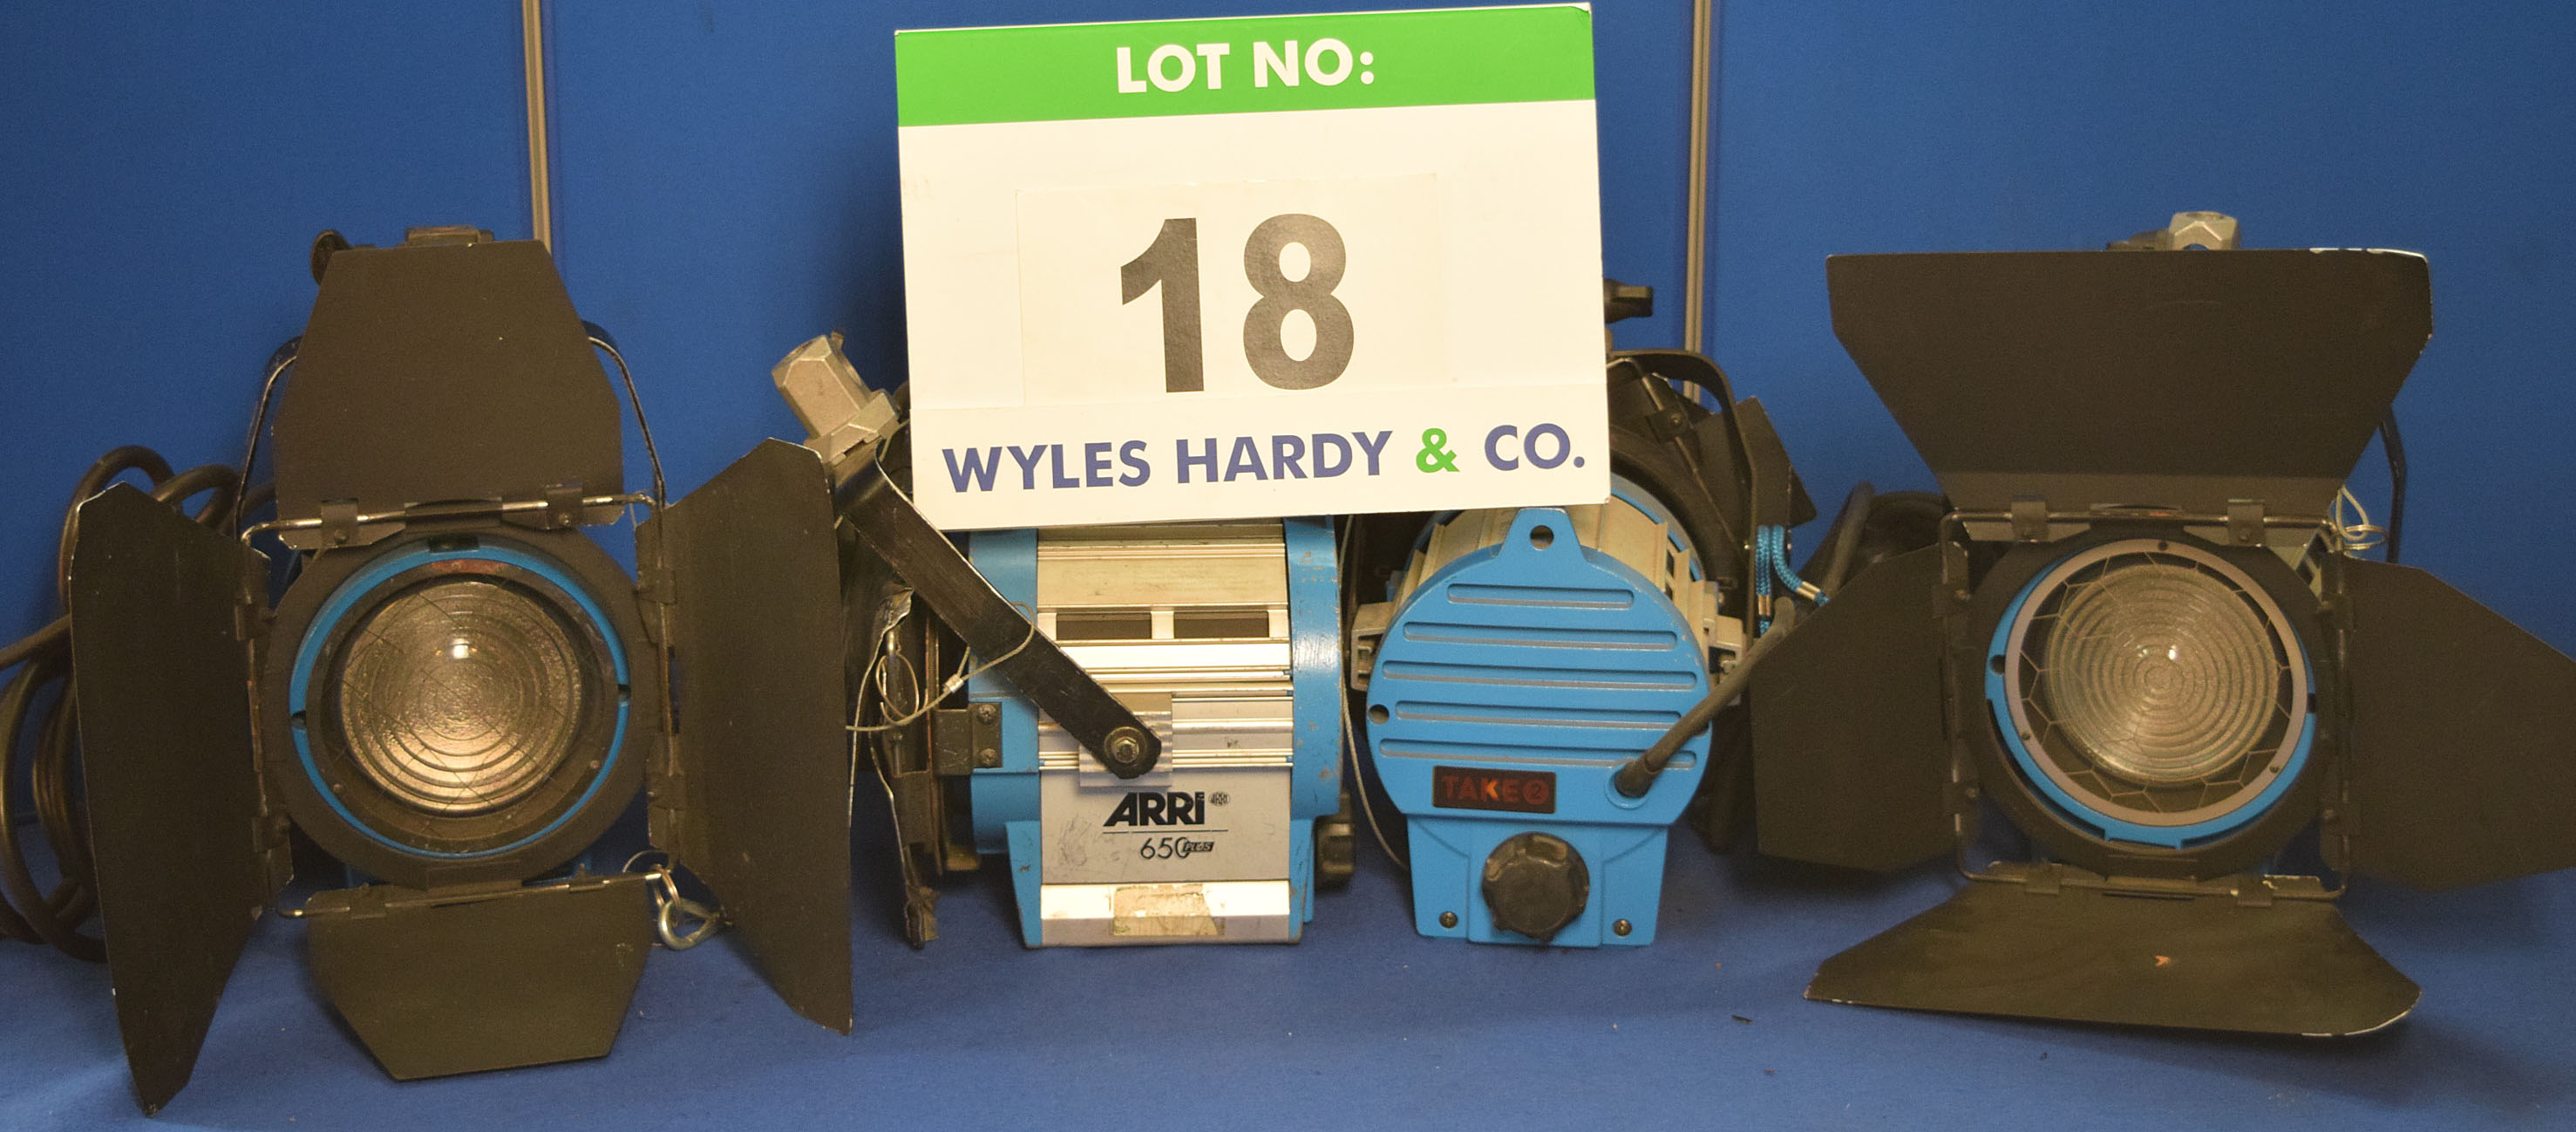 Lot 18 - Four ARRI 650 Plus 650W Lights each with fitted Barn Doors, Stirrup Mount and Switched Power Feed